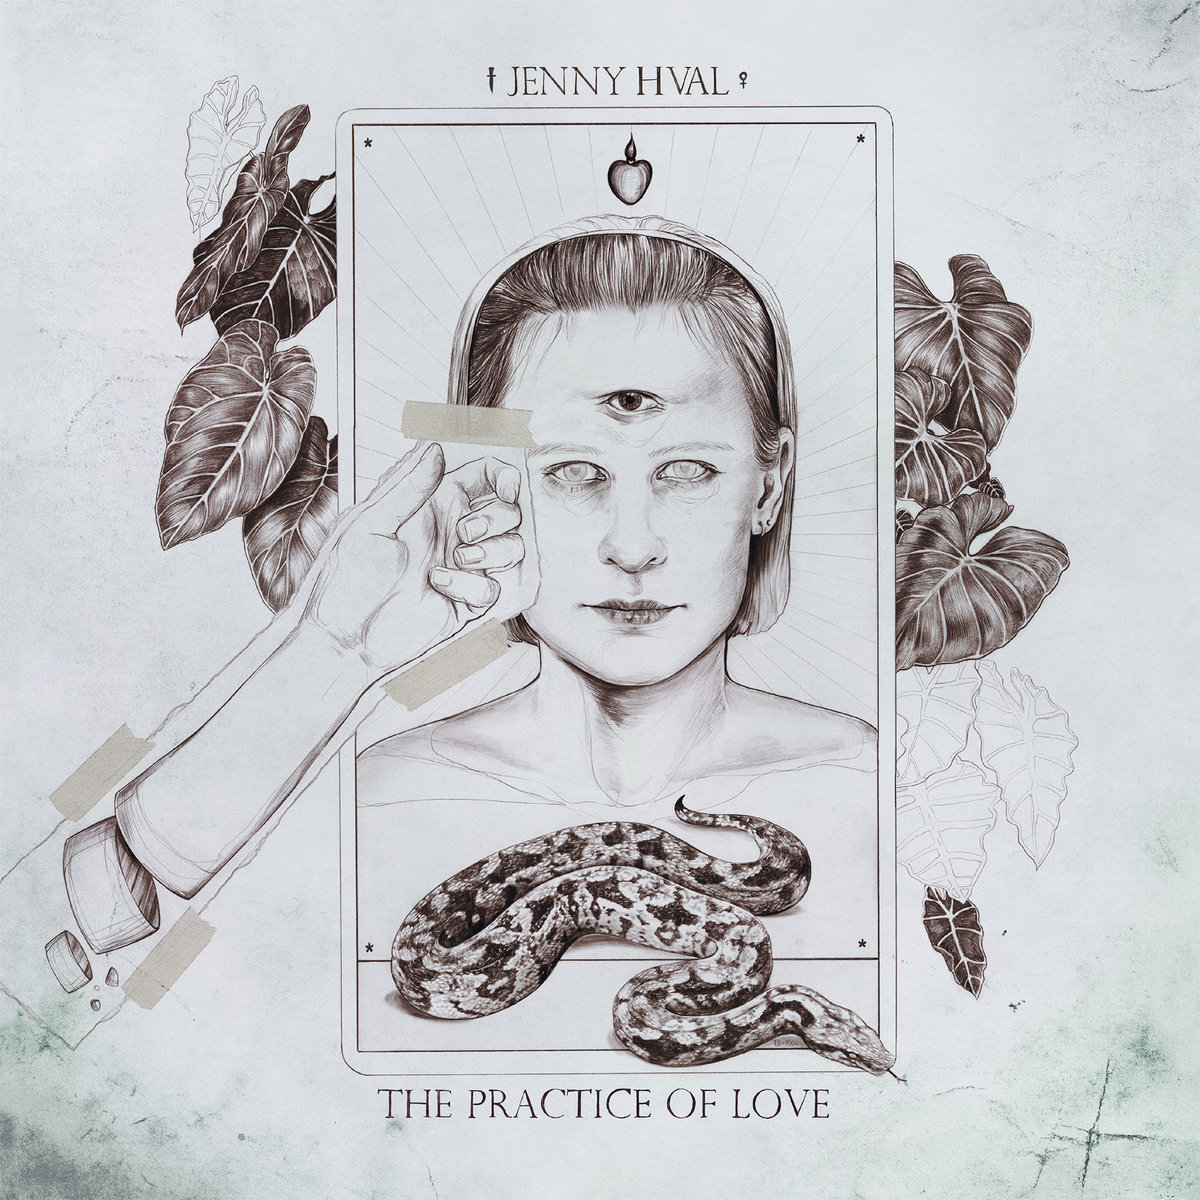 Jenny Hval — The Practice of Love - Sacred Bones Records, Sep. 2019